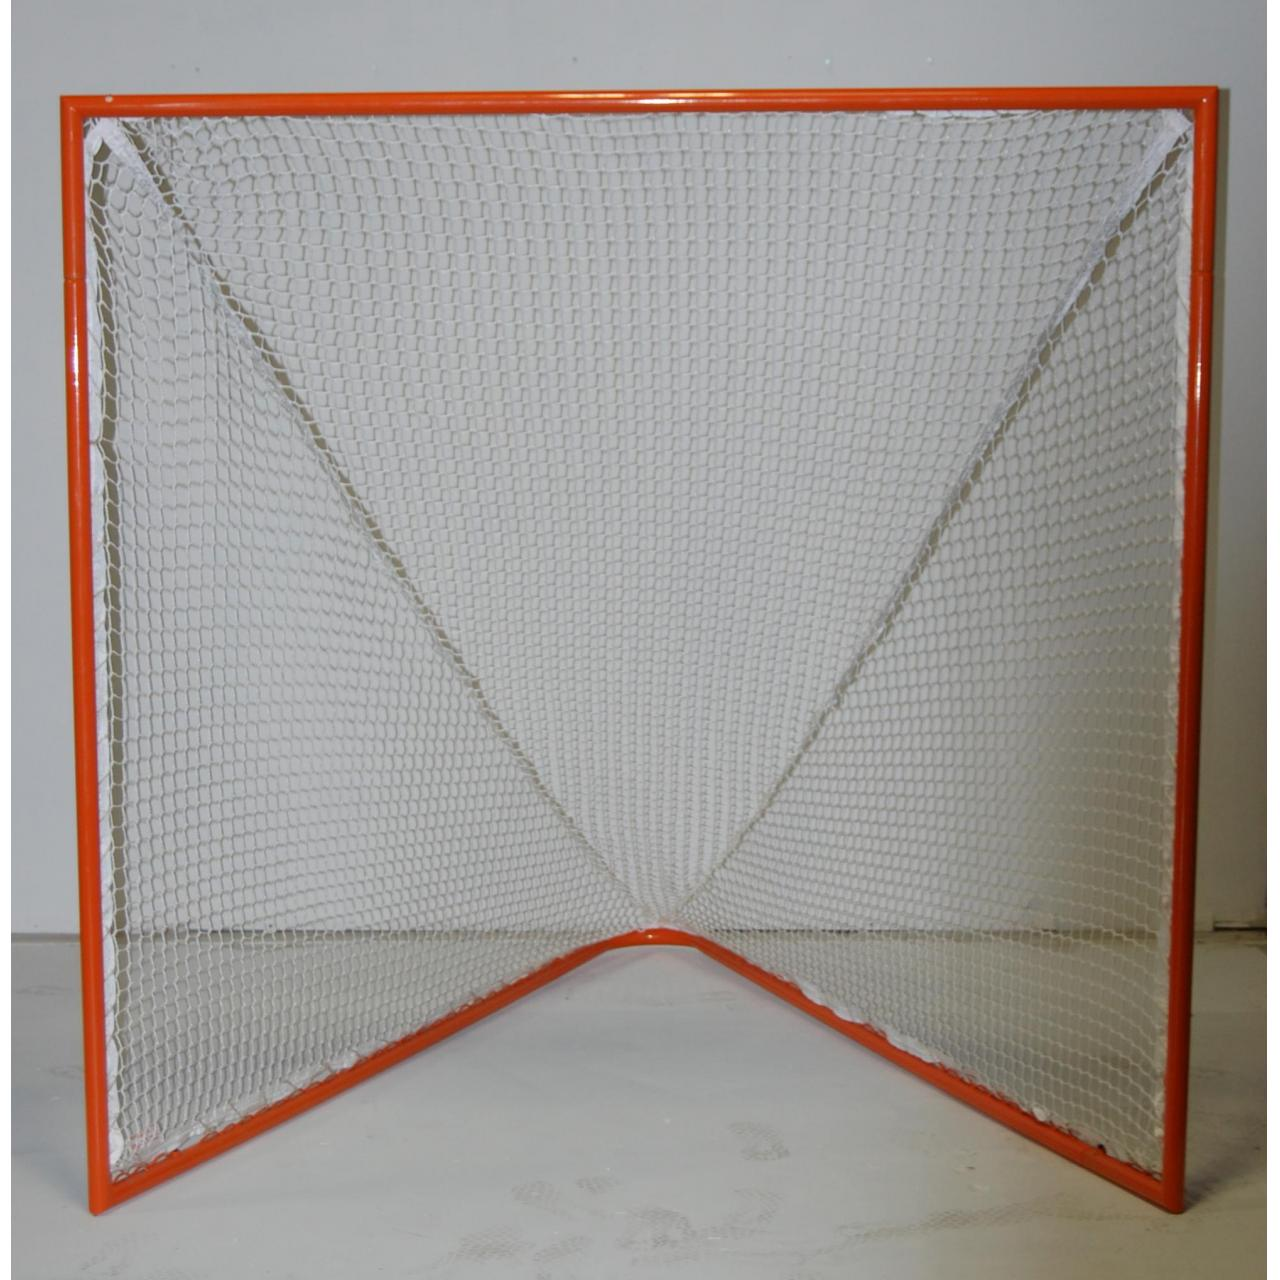 Buy cheap Baseball-Softball Lacrosse Deluxe Practice Lacrosse Goal w/ Lacing Lip from wholesalers